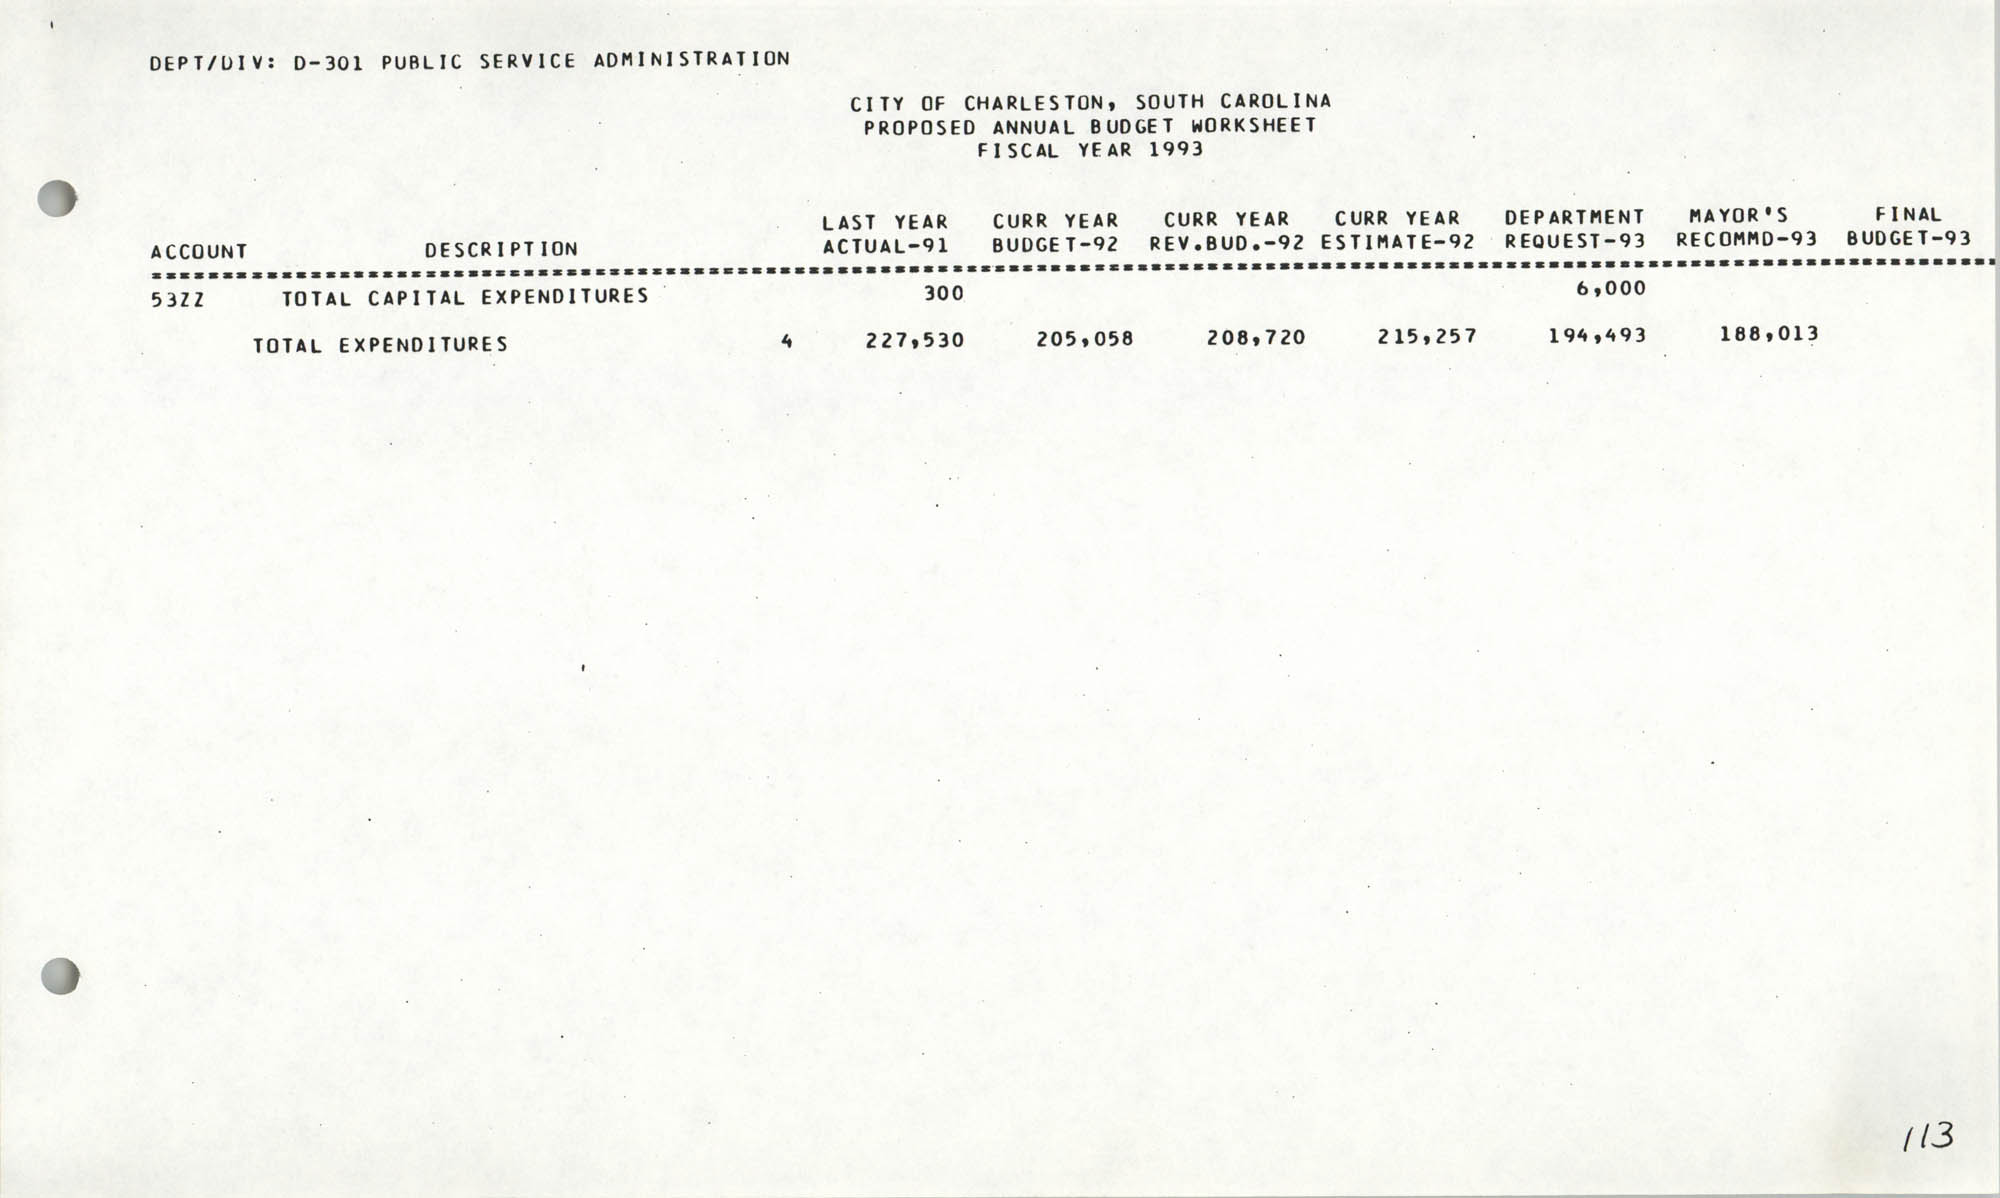 The City Council of Charleston, South Carolina, 1993 Budget, Page 113